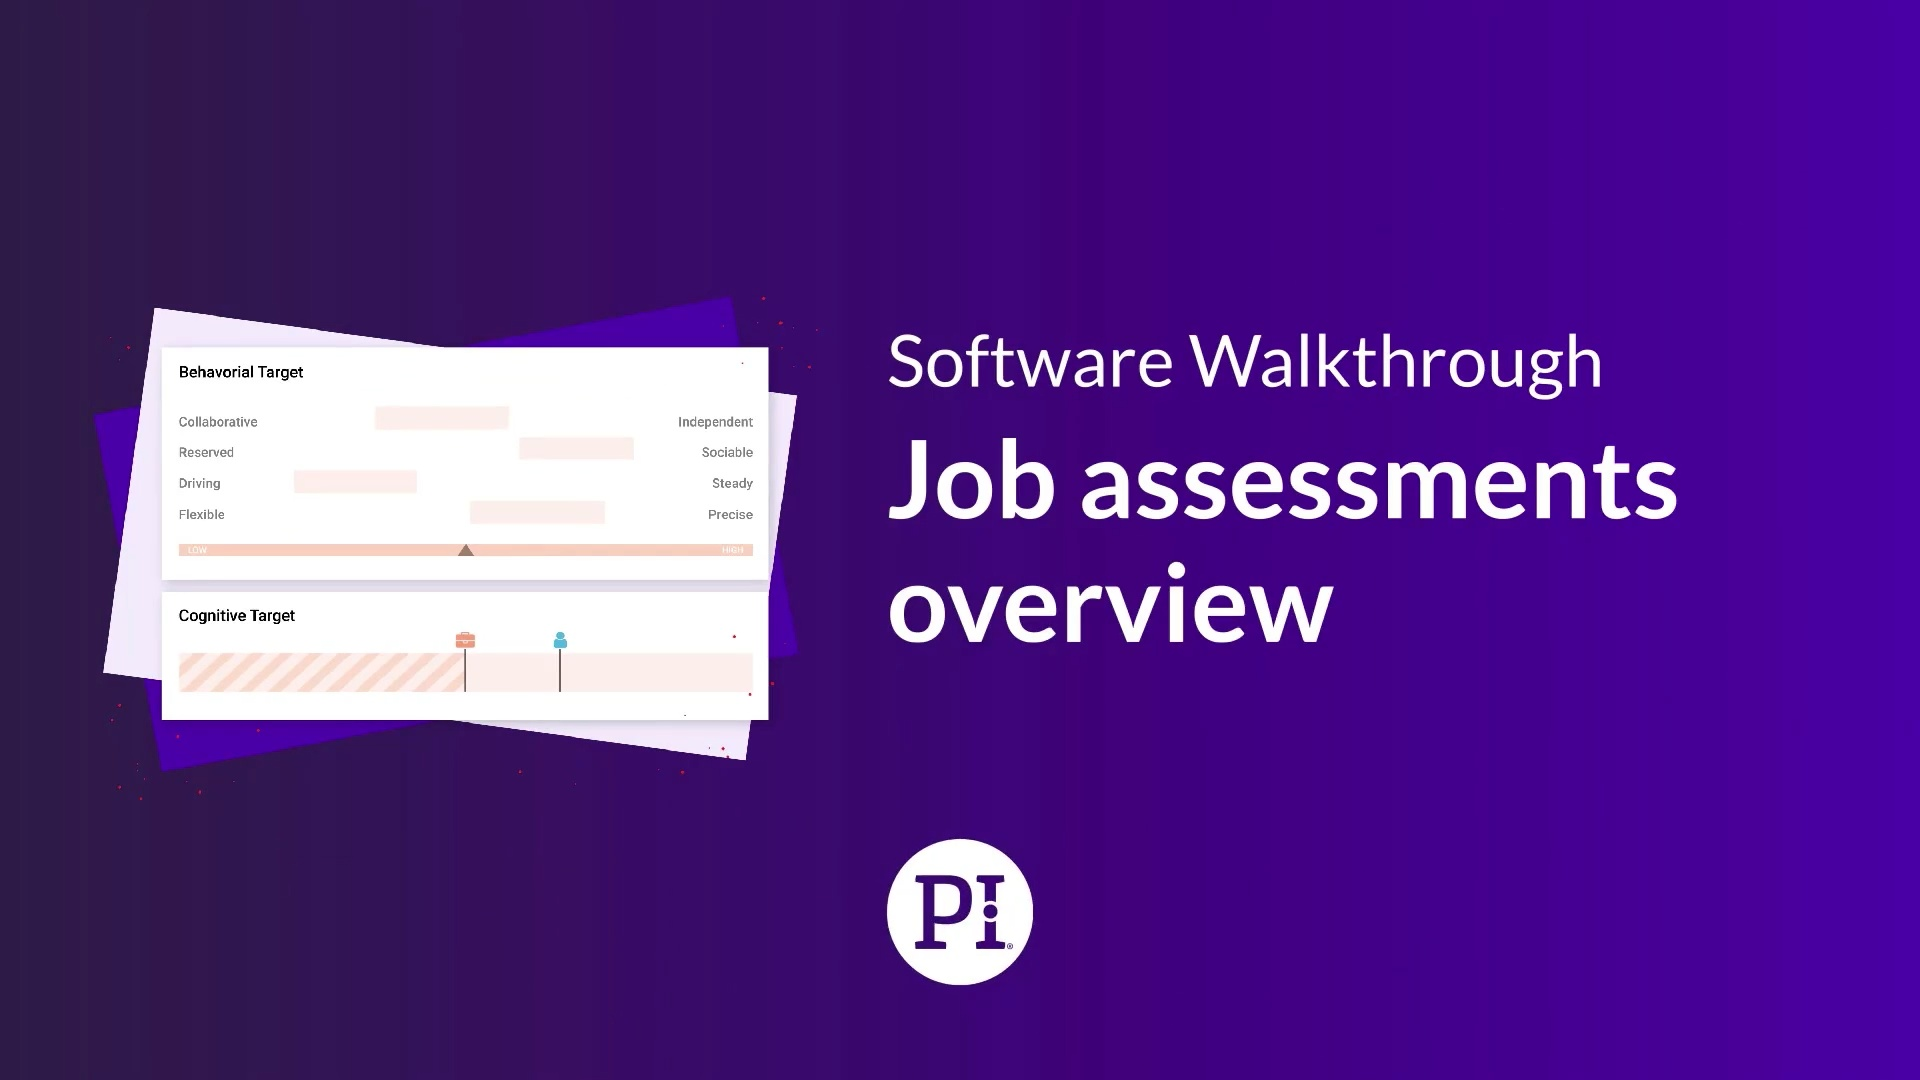 Job assessments overview